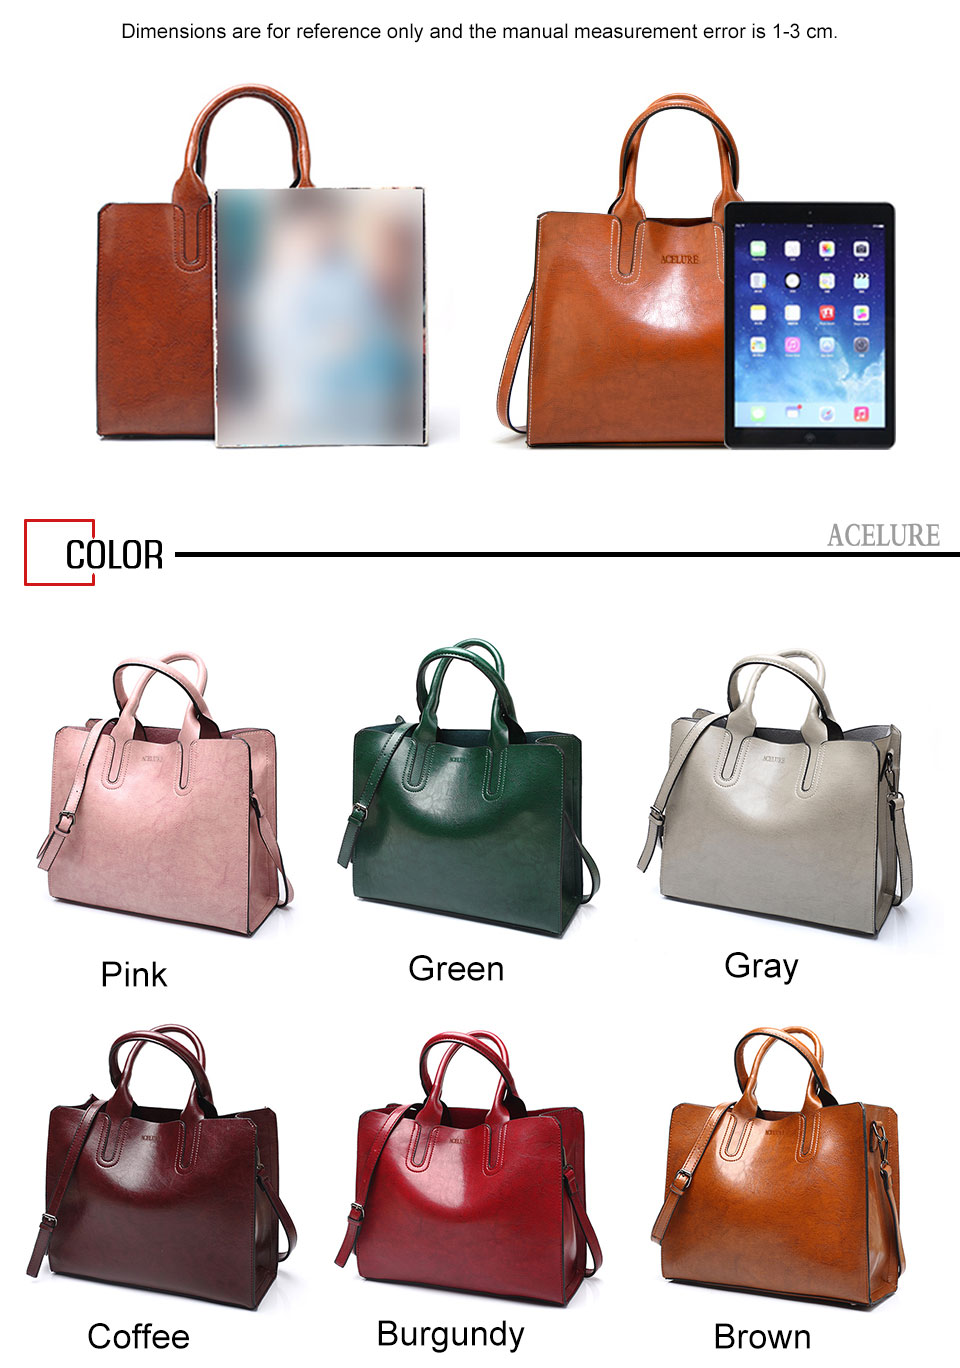 ACELURE Leather Handbags Big Women Bag High Quality Casual Female Bags Trunk Tote Spanish Brand Shoulder Bag Ladies Large Bolsos 10